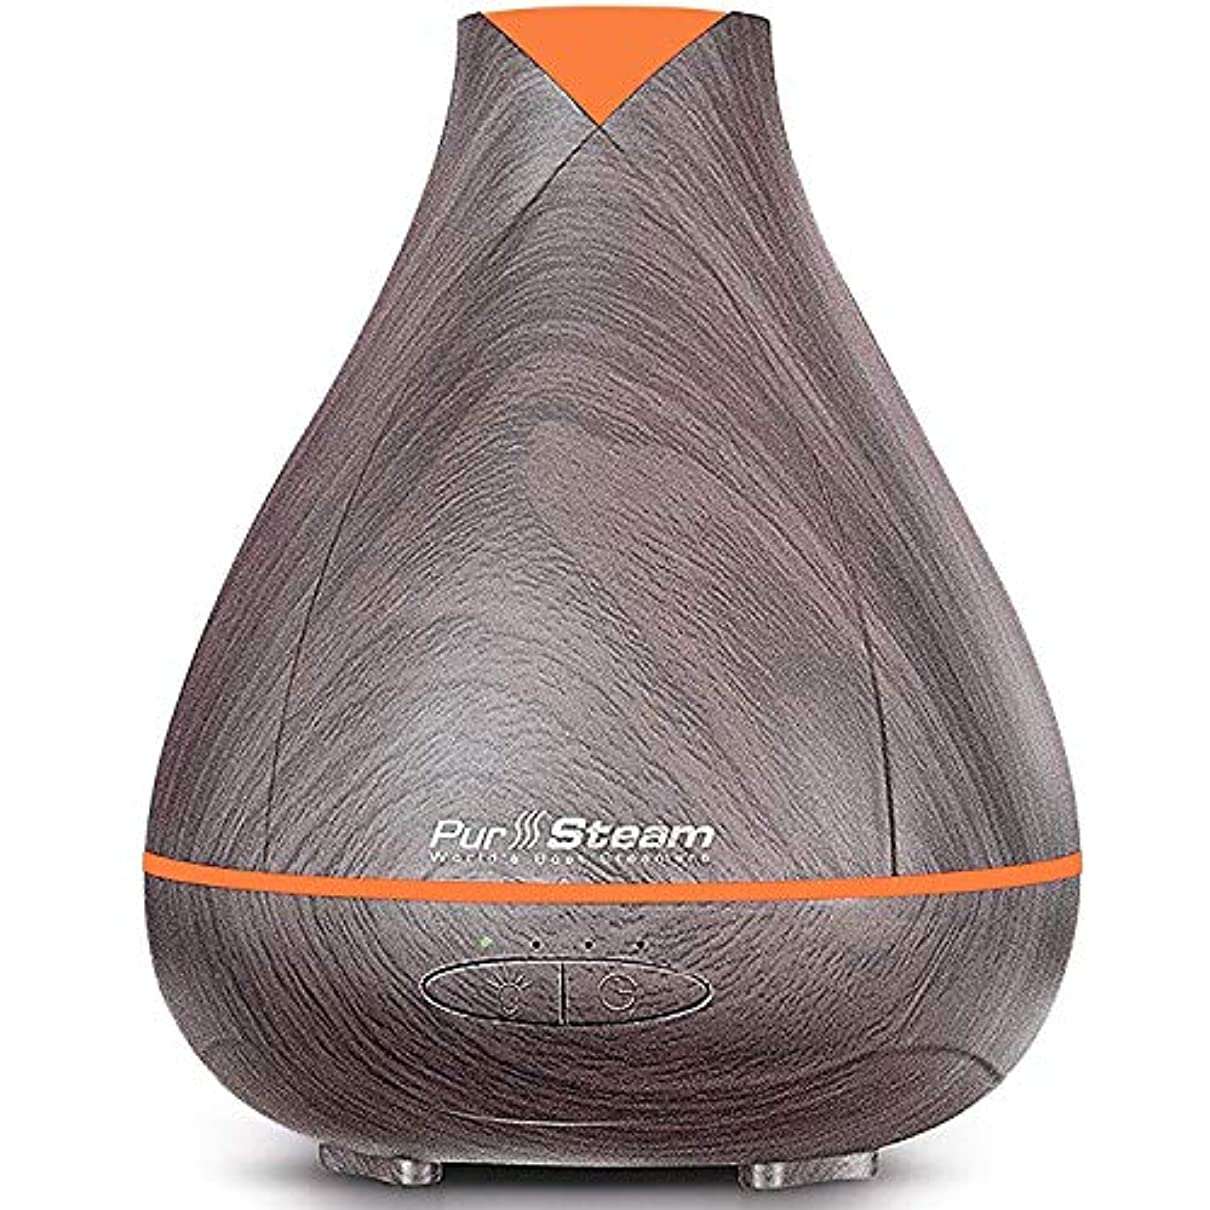 一般接地ホイストPurSteam Essential Oil Diffuser, Wood Grain Aromatherapy Diffuser Ultrasonic Cool Mist Humidifier with Color LED...